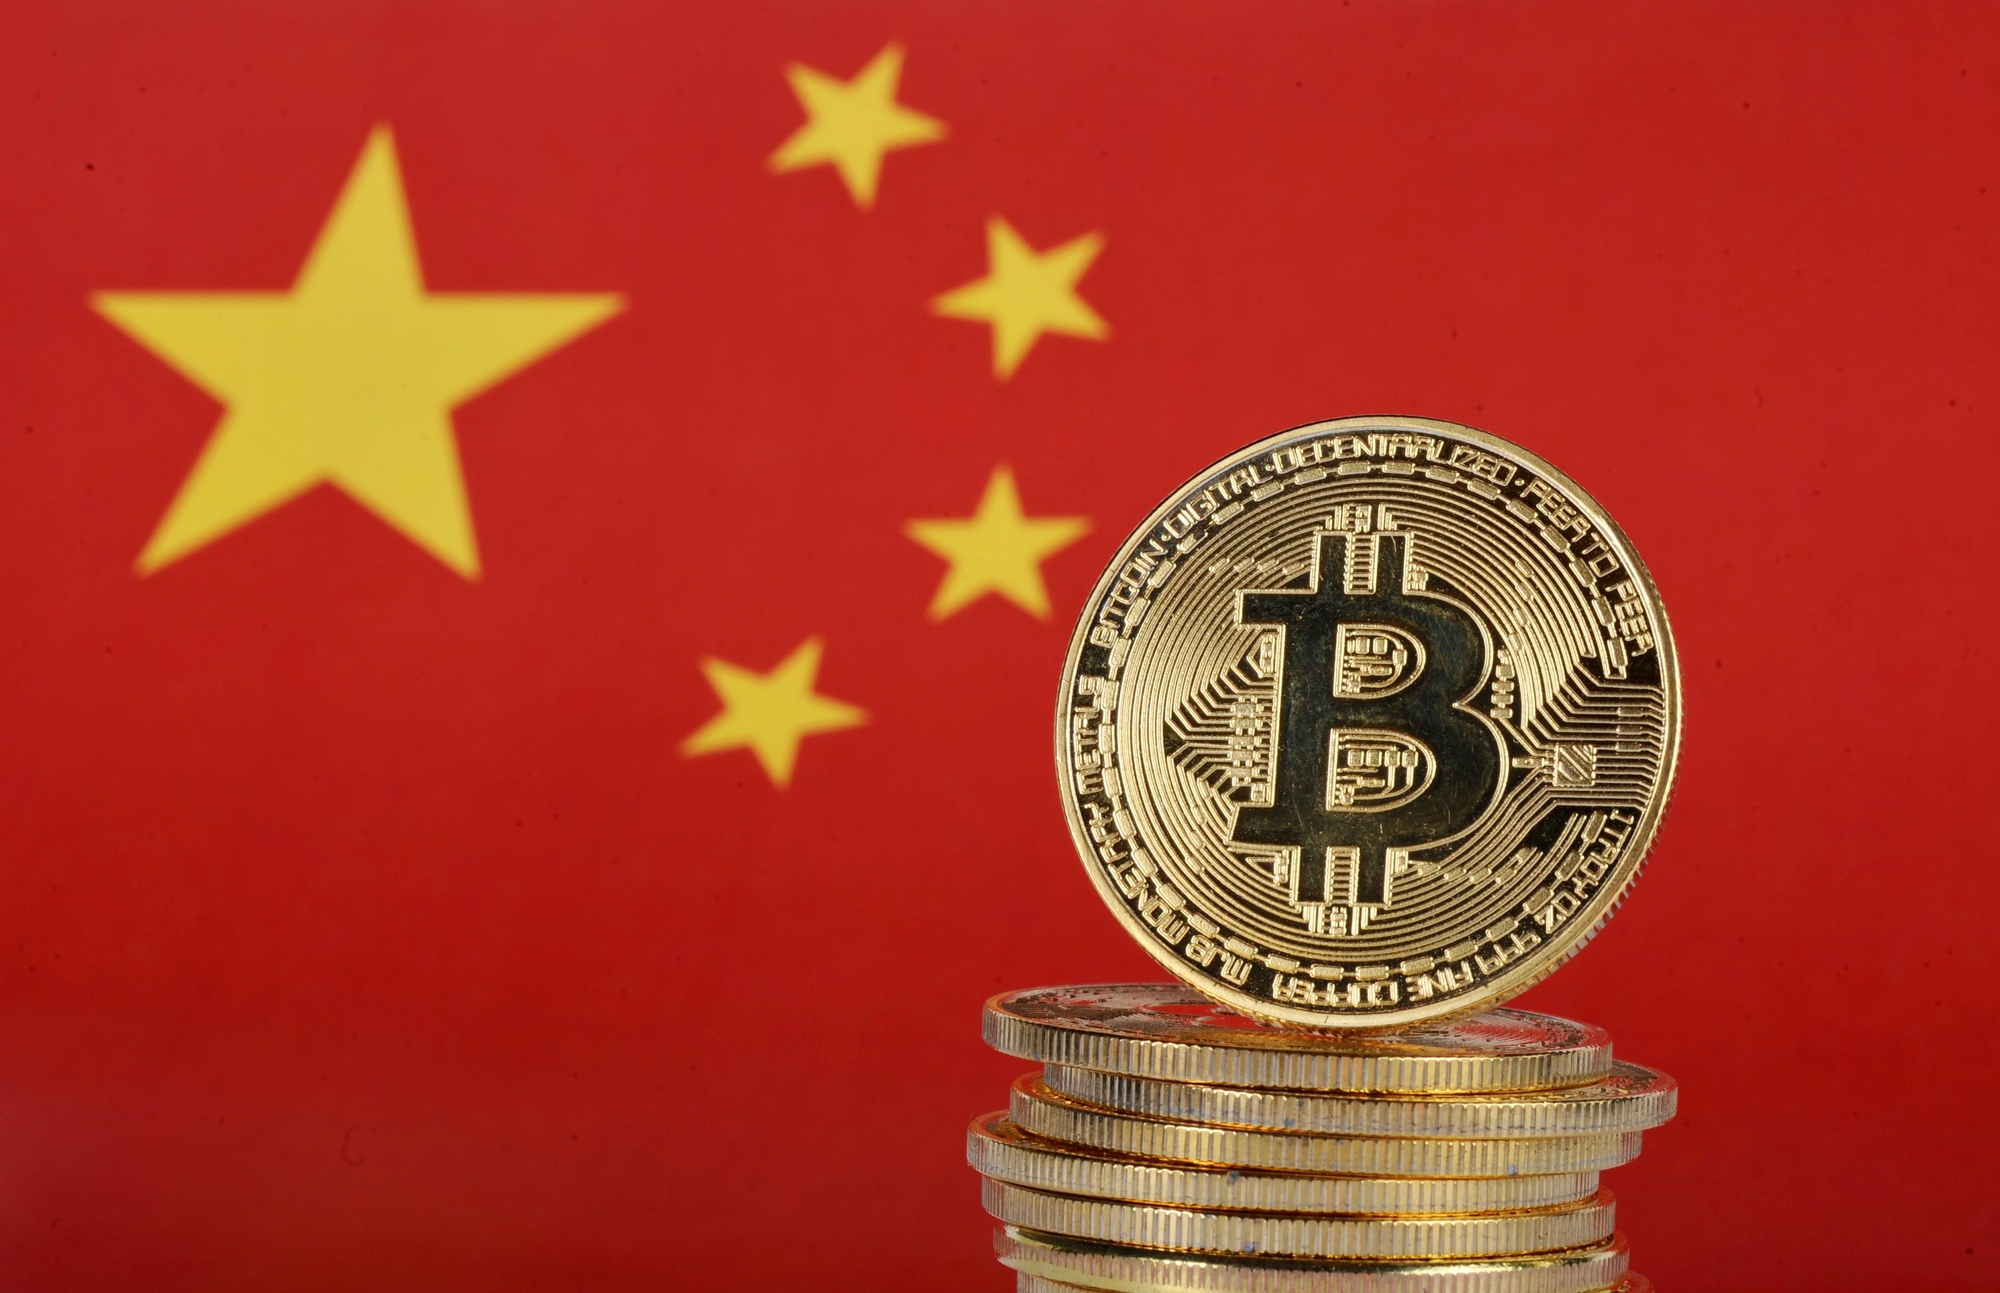 China's flag and bitcoin